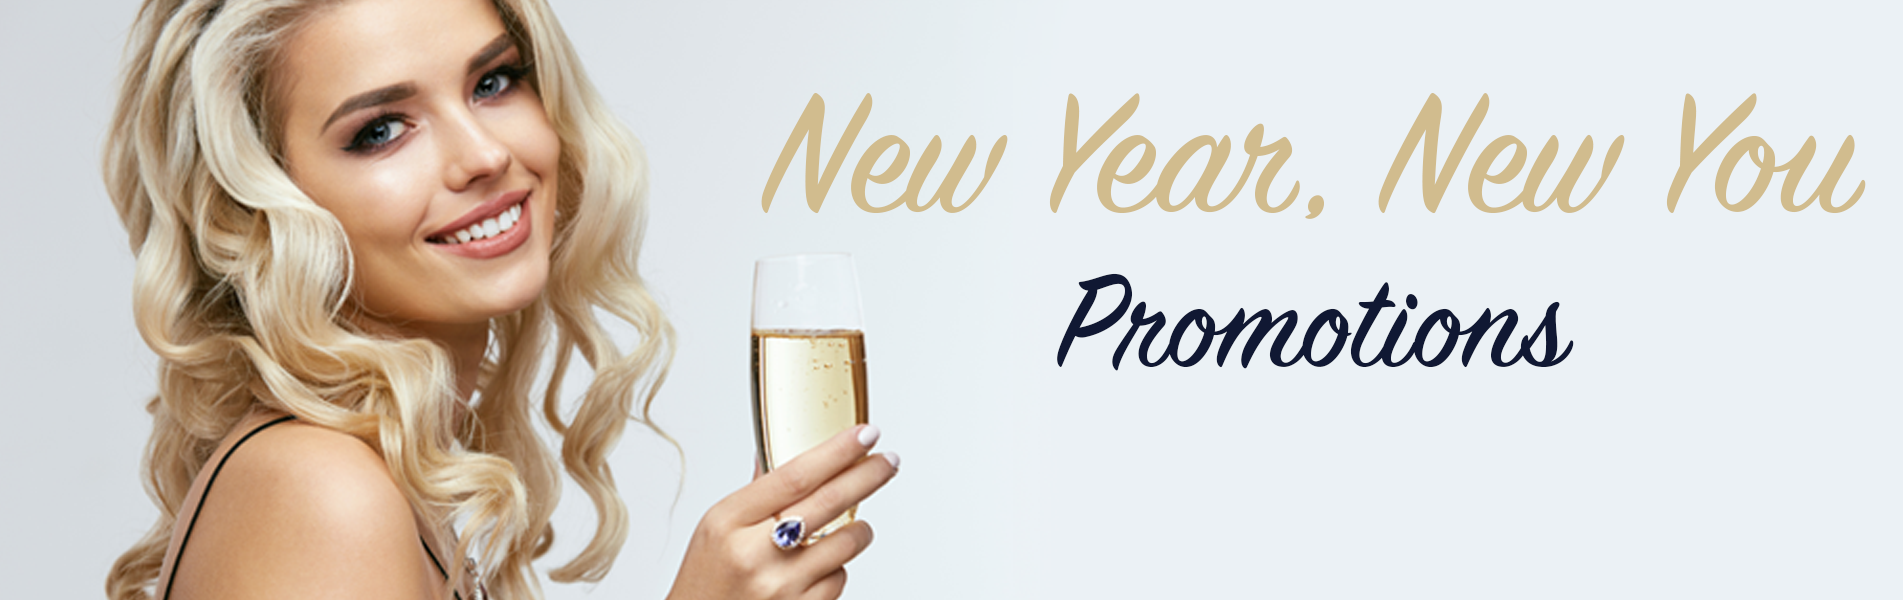 PROMOTIONS VALID UNTIL JANUARY 31, 2020!